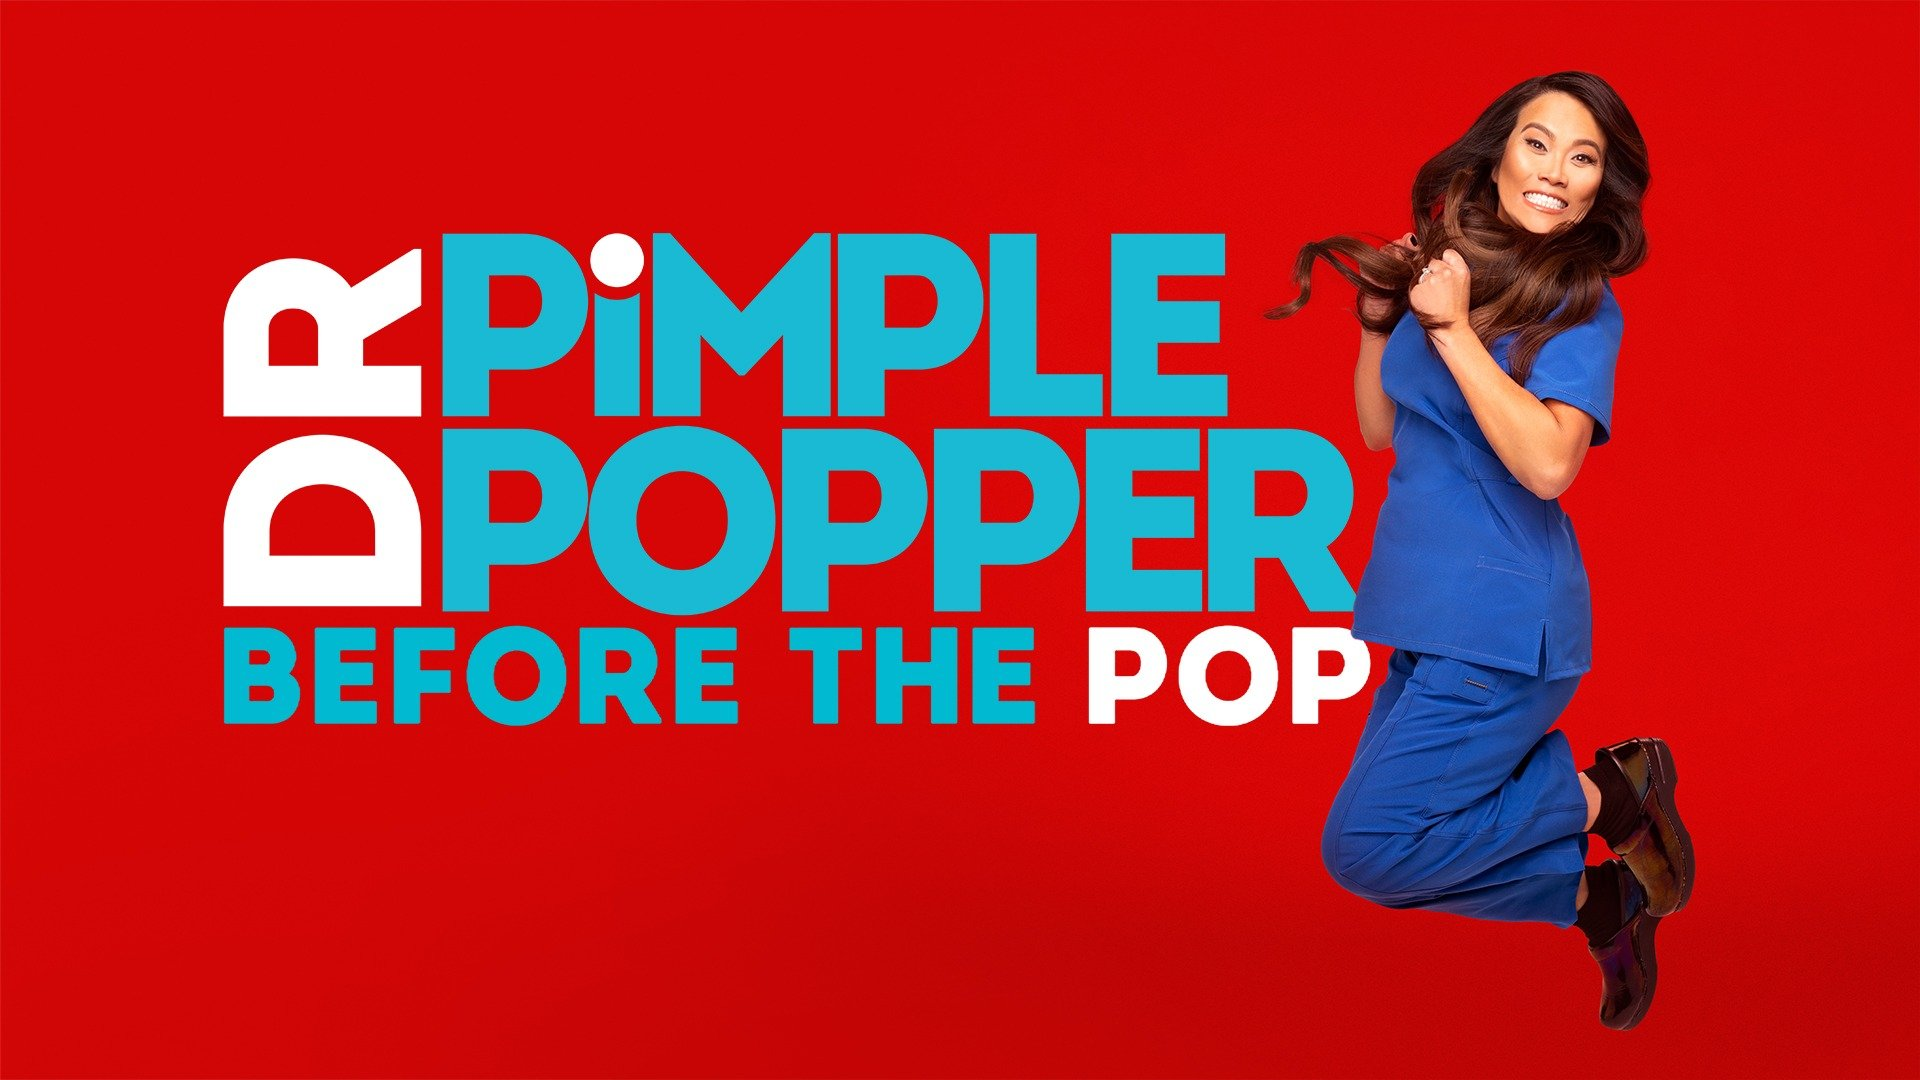 Dr. Pimple Popper: Before the Pop